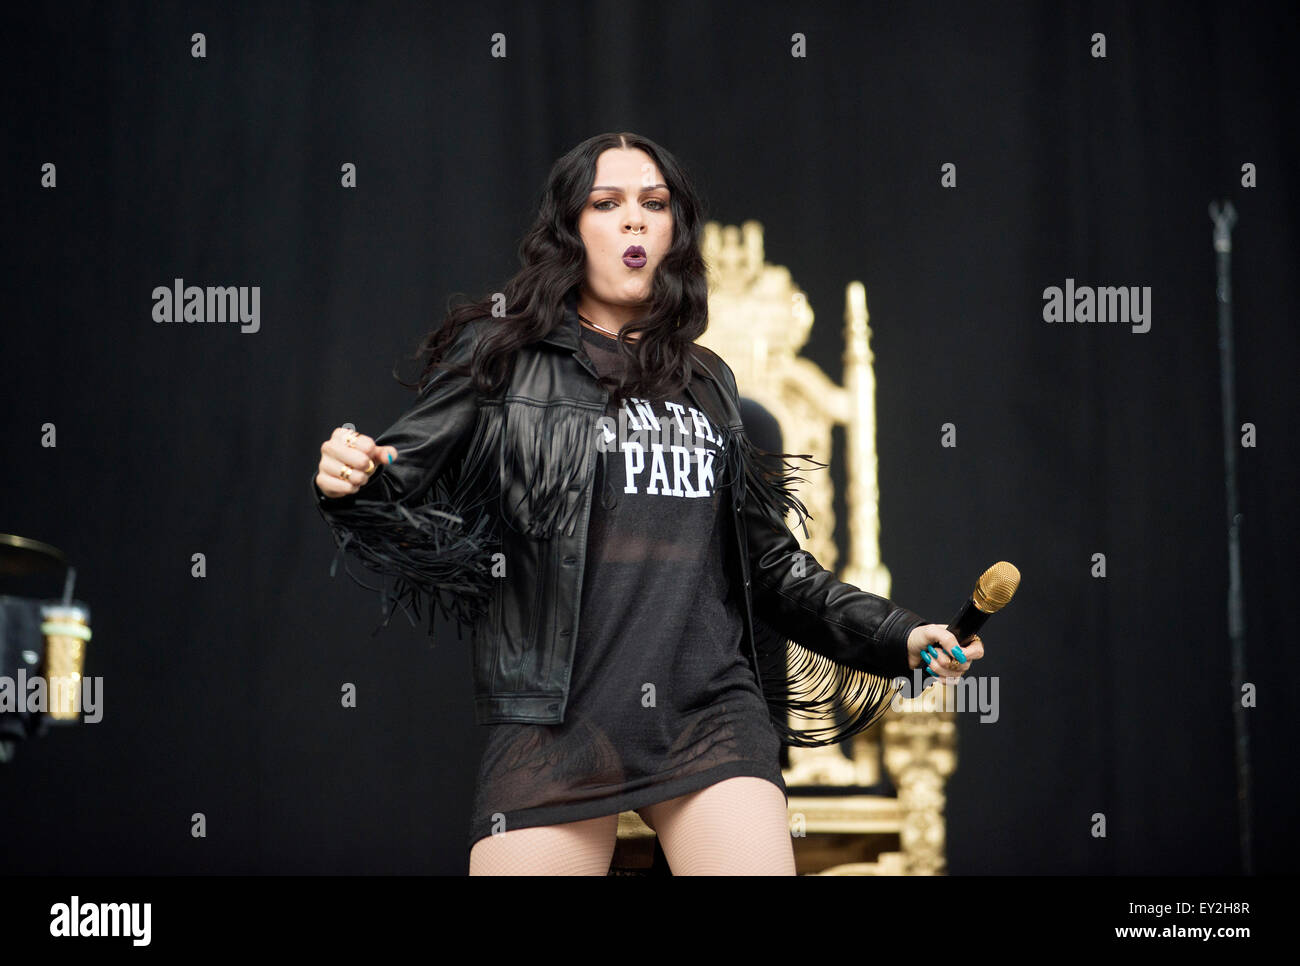 Jessie J performs on the main stage at T In The Park Festival at Strathallan Castle on July 11, 2015 in Strathallan, - Stock Image